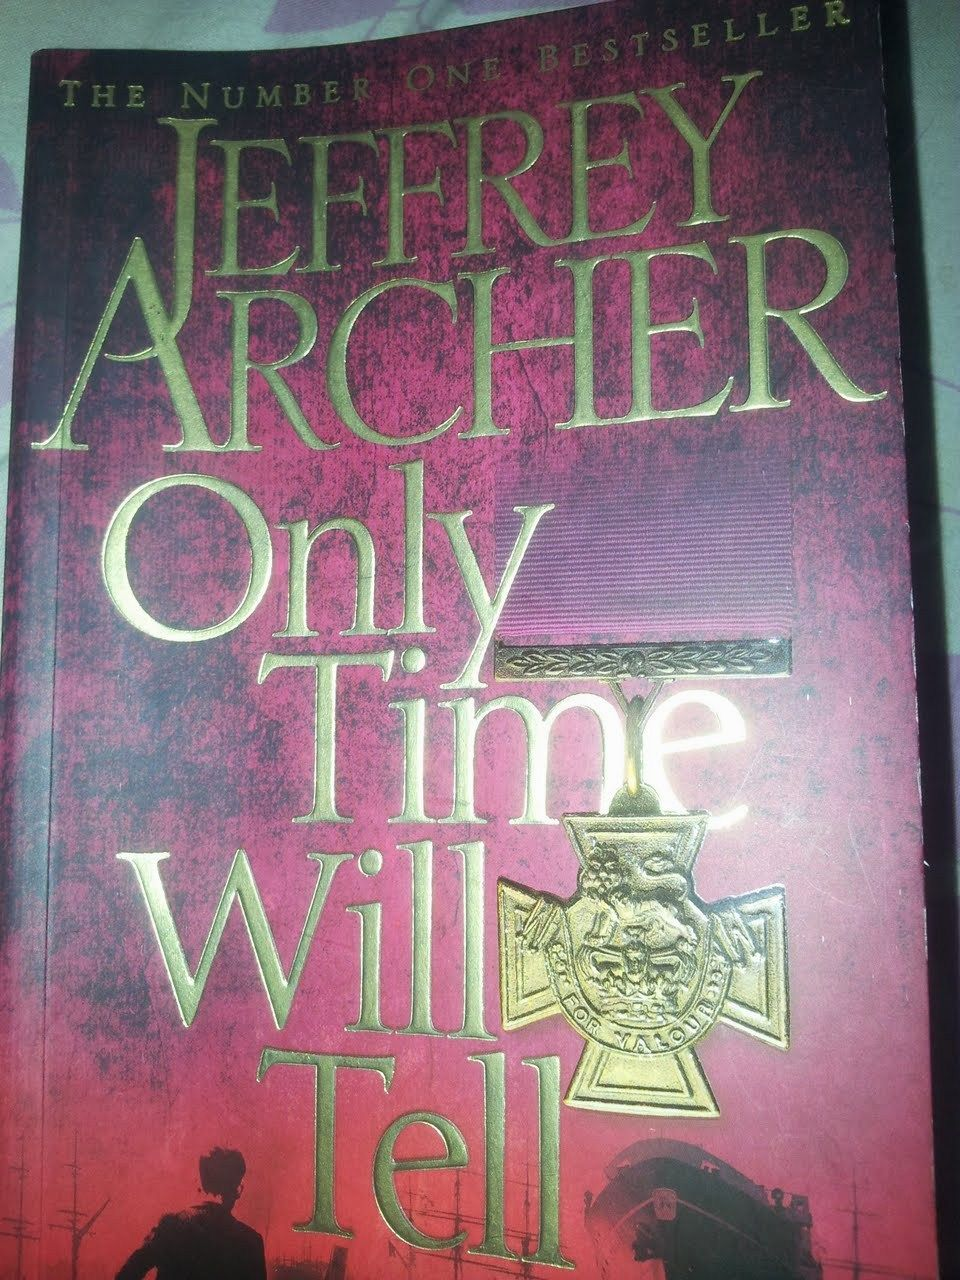 Jeffrey Archer Libros A Wonderful Tale By Jeffrey Archer Books On My Mind Jeffrey